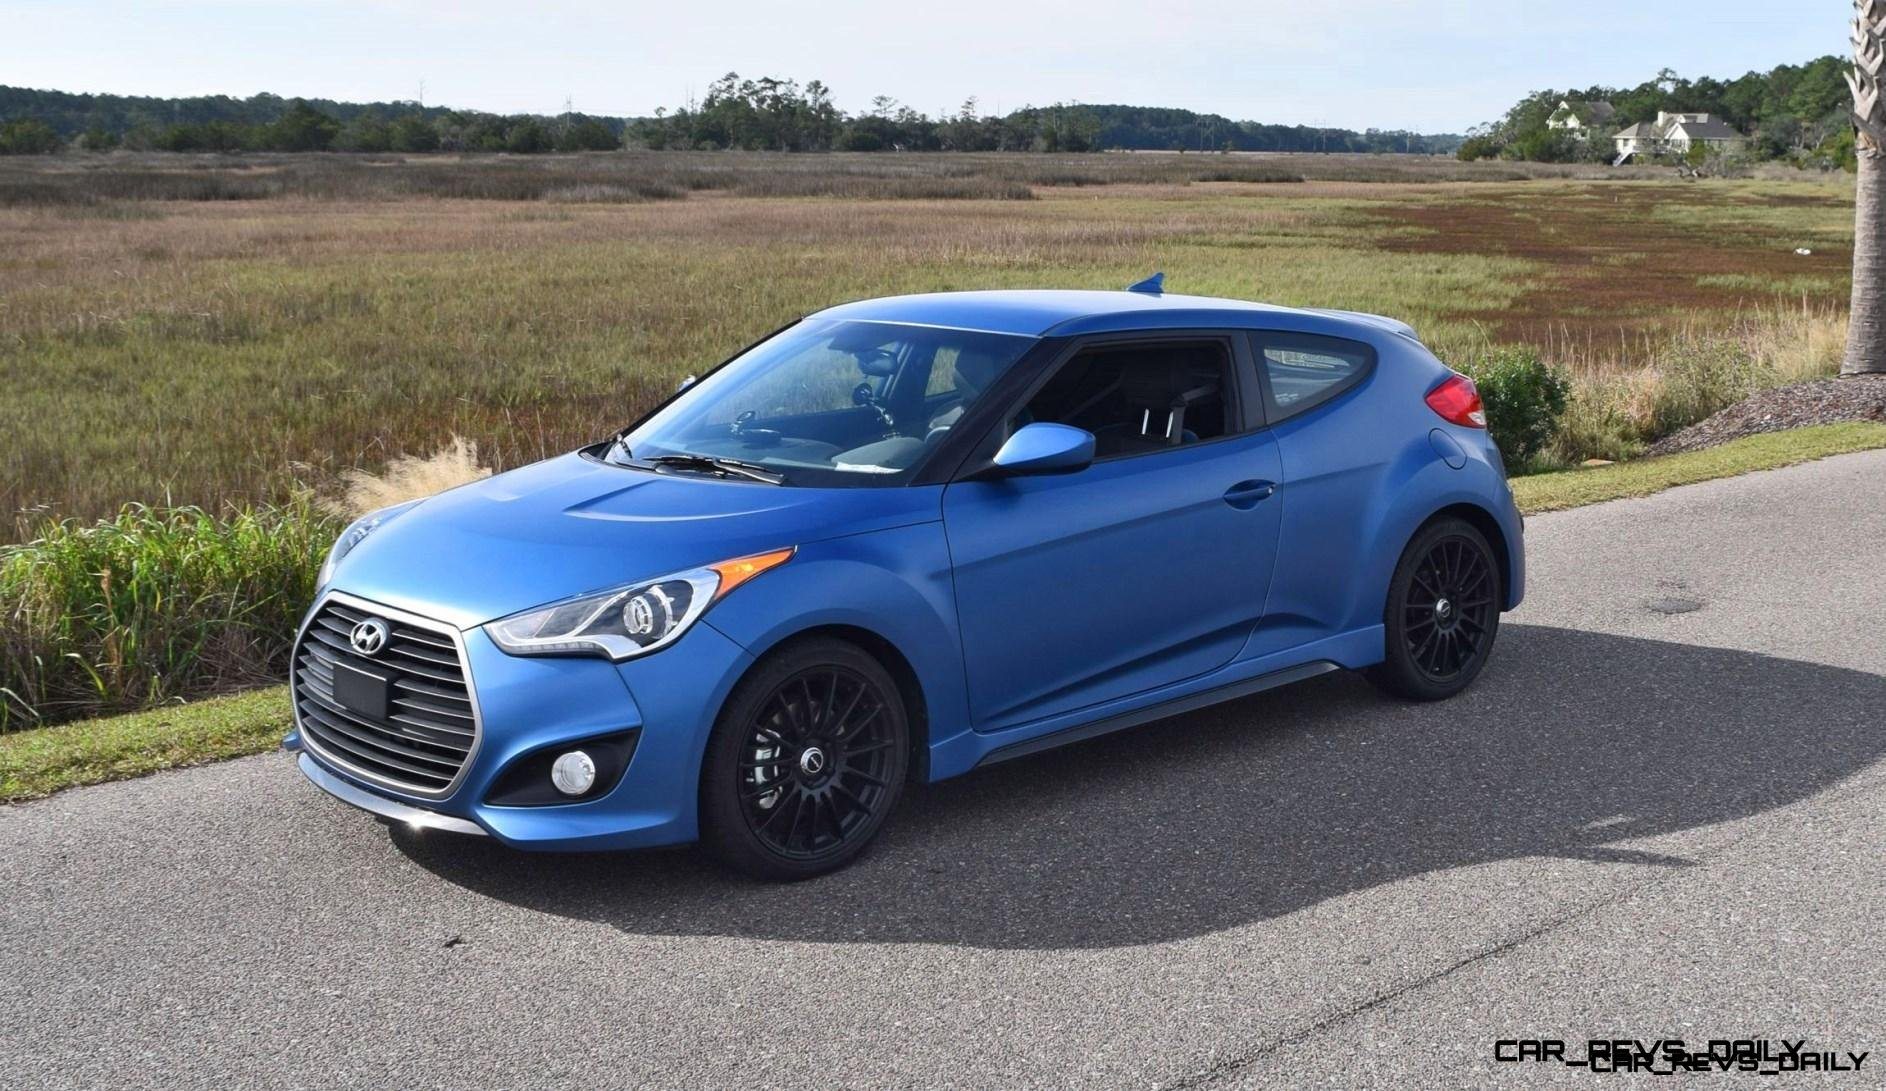 2016 Hyundai Veloster Rally Turbo 6